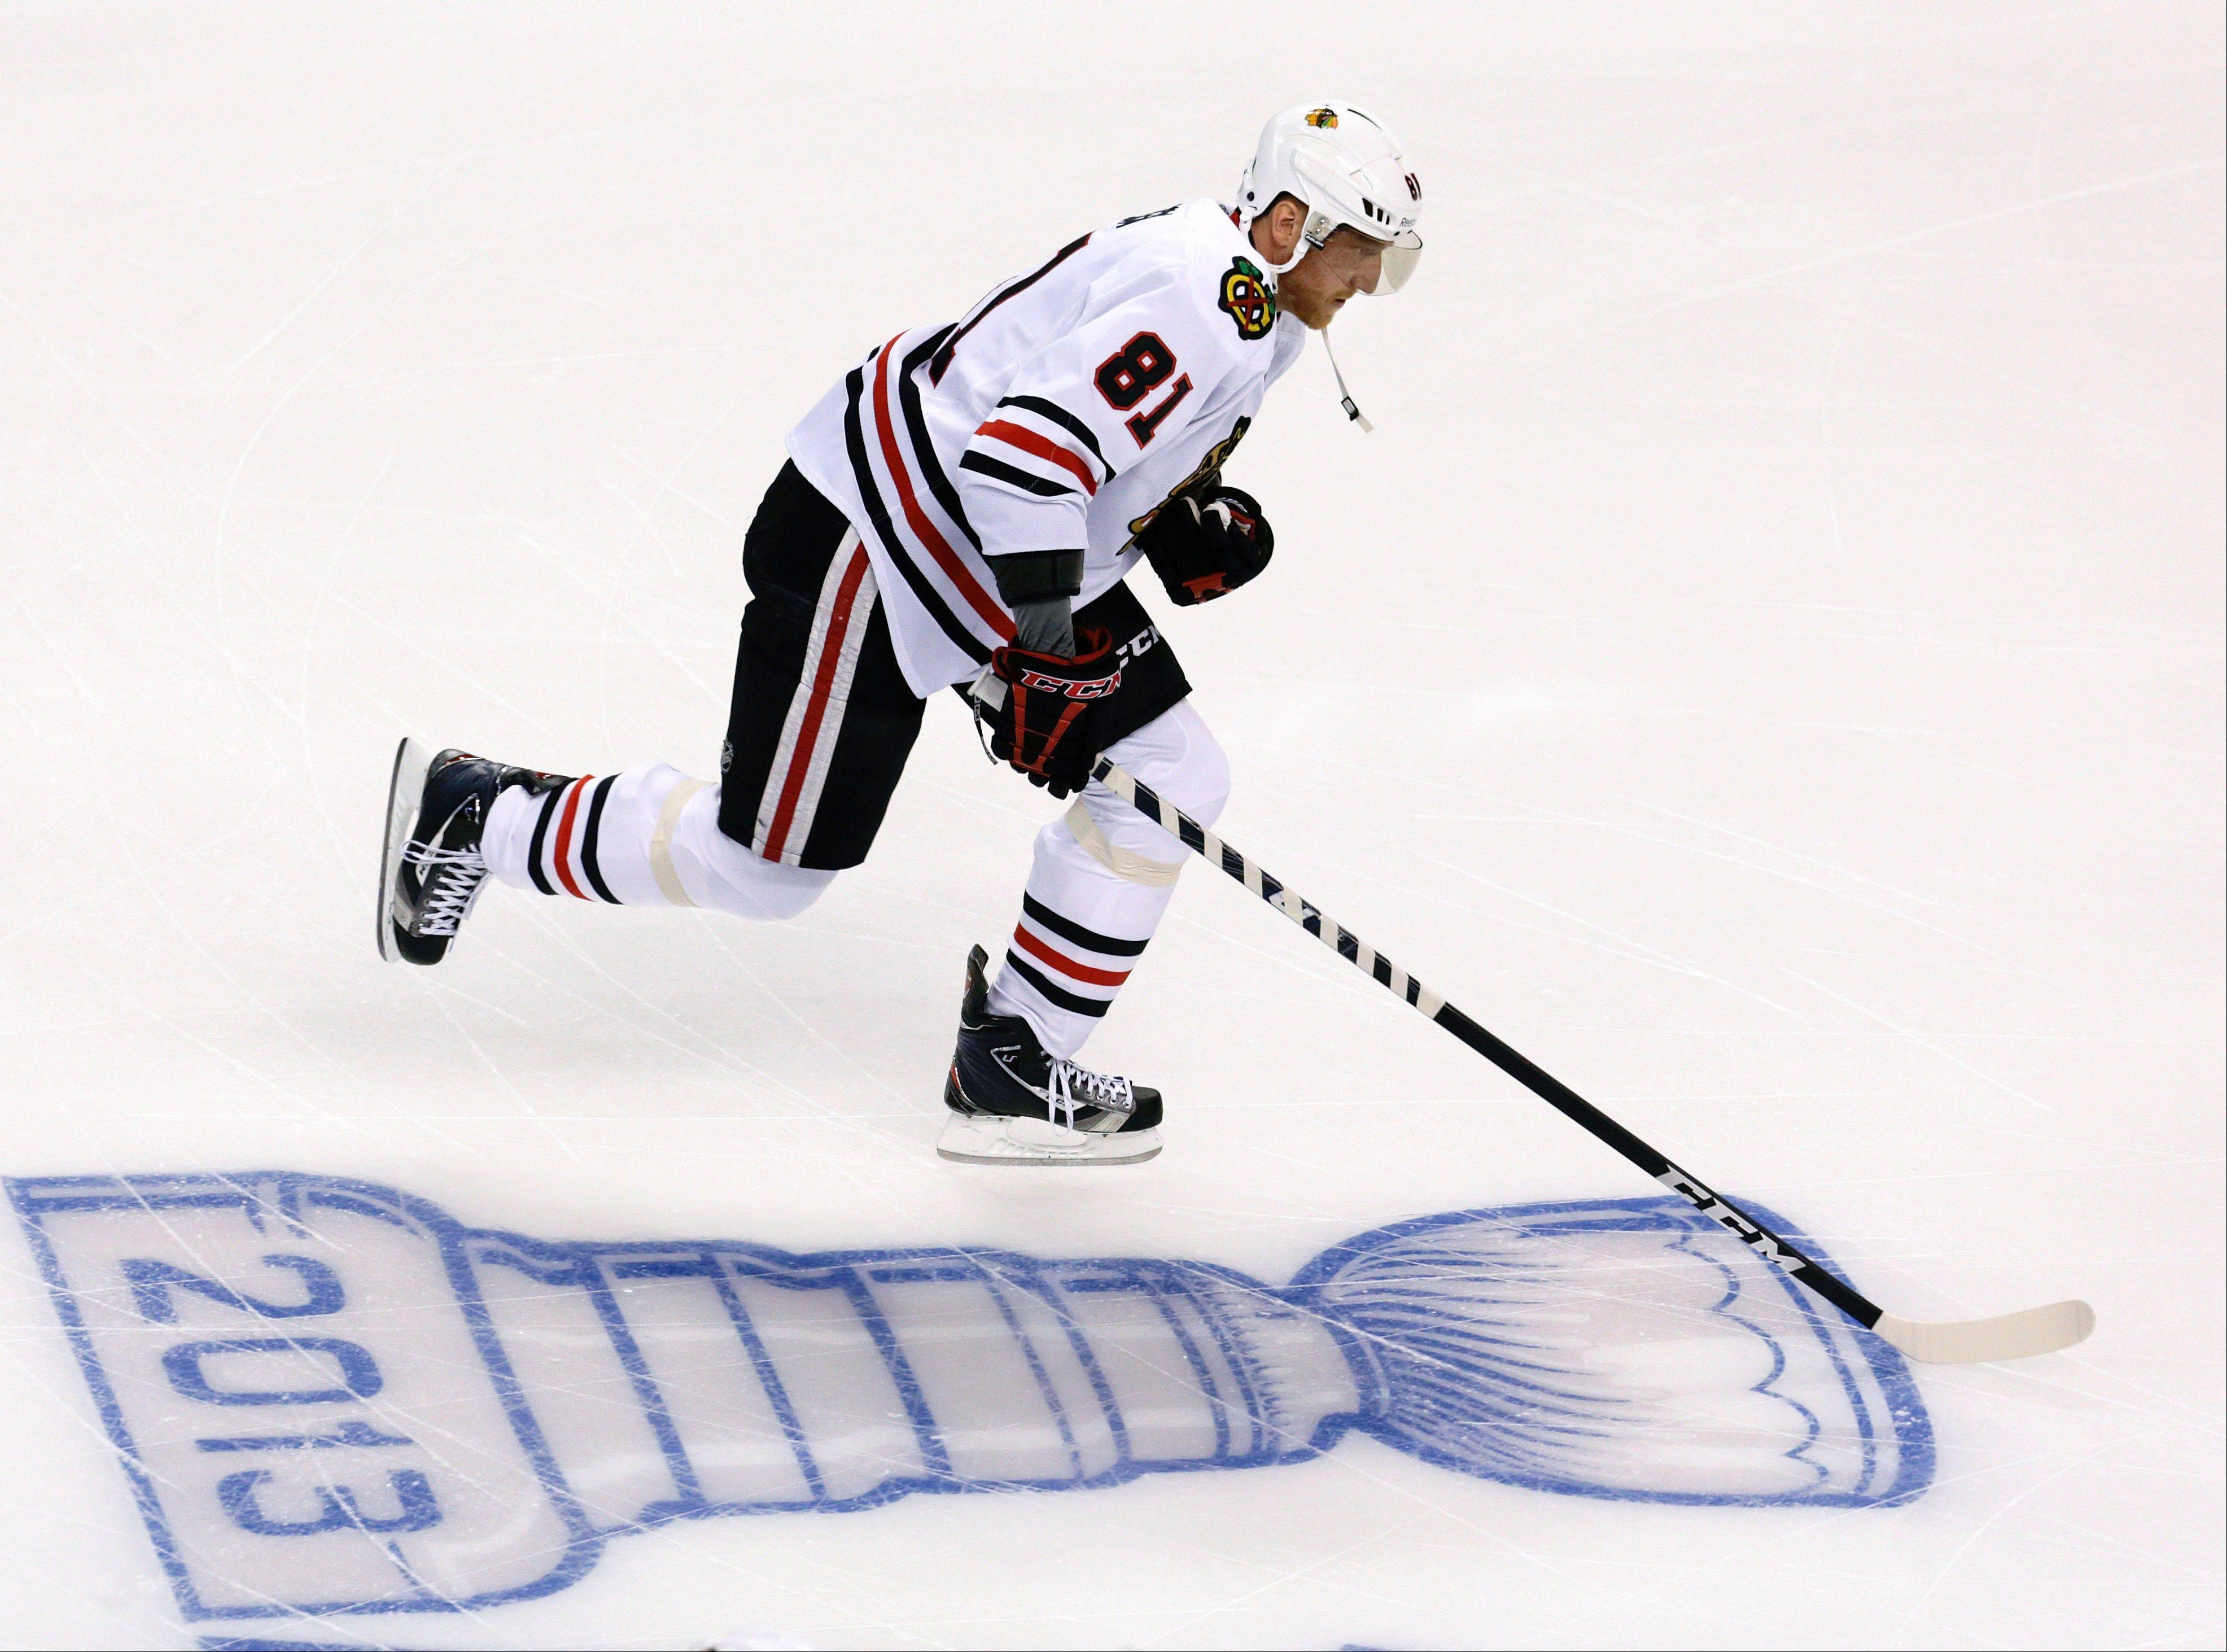 Chicago Blackhawks right wing Marian Hossa (81), of Slovakia, skates during warm-ups before Game 4 of the NHL hockey Stanley Cup Finals between the Boston Bruins and the Blackhawks.